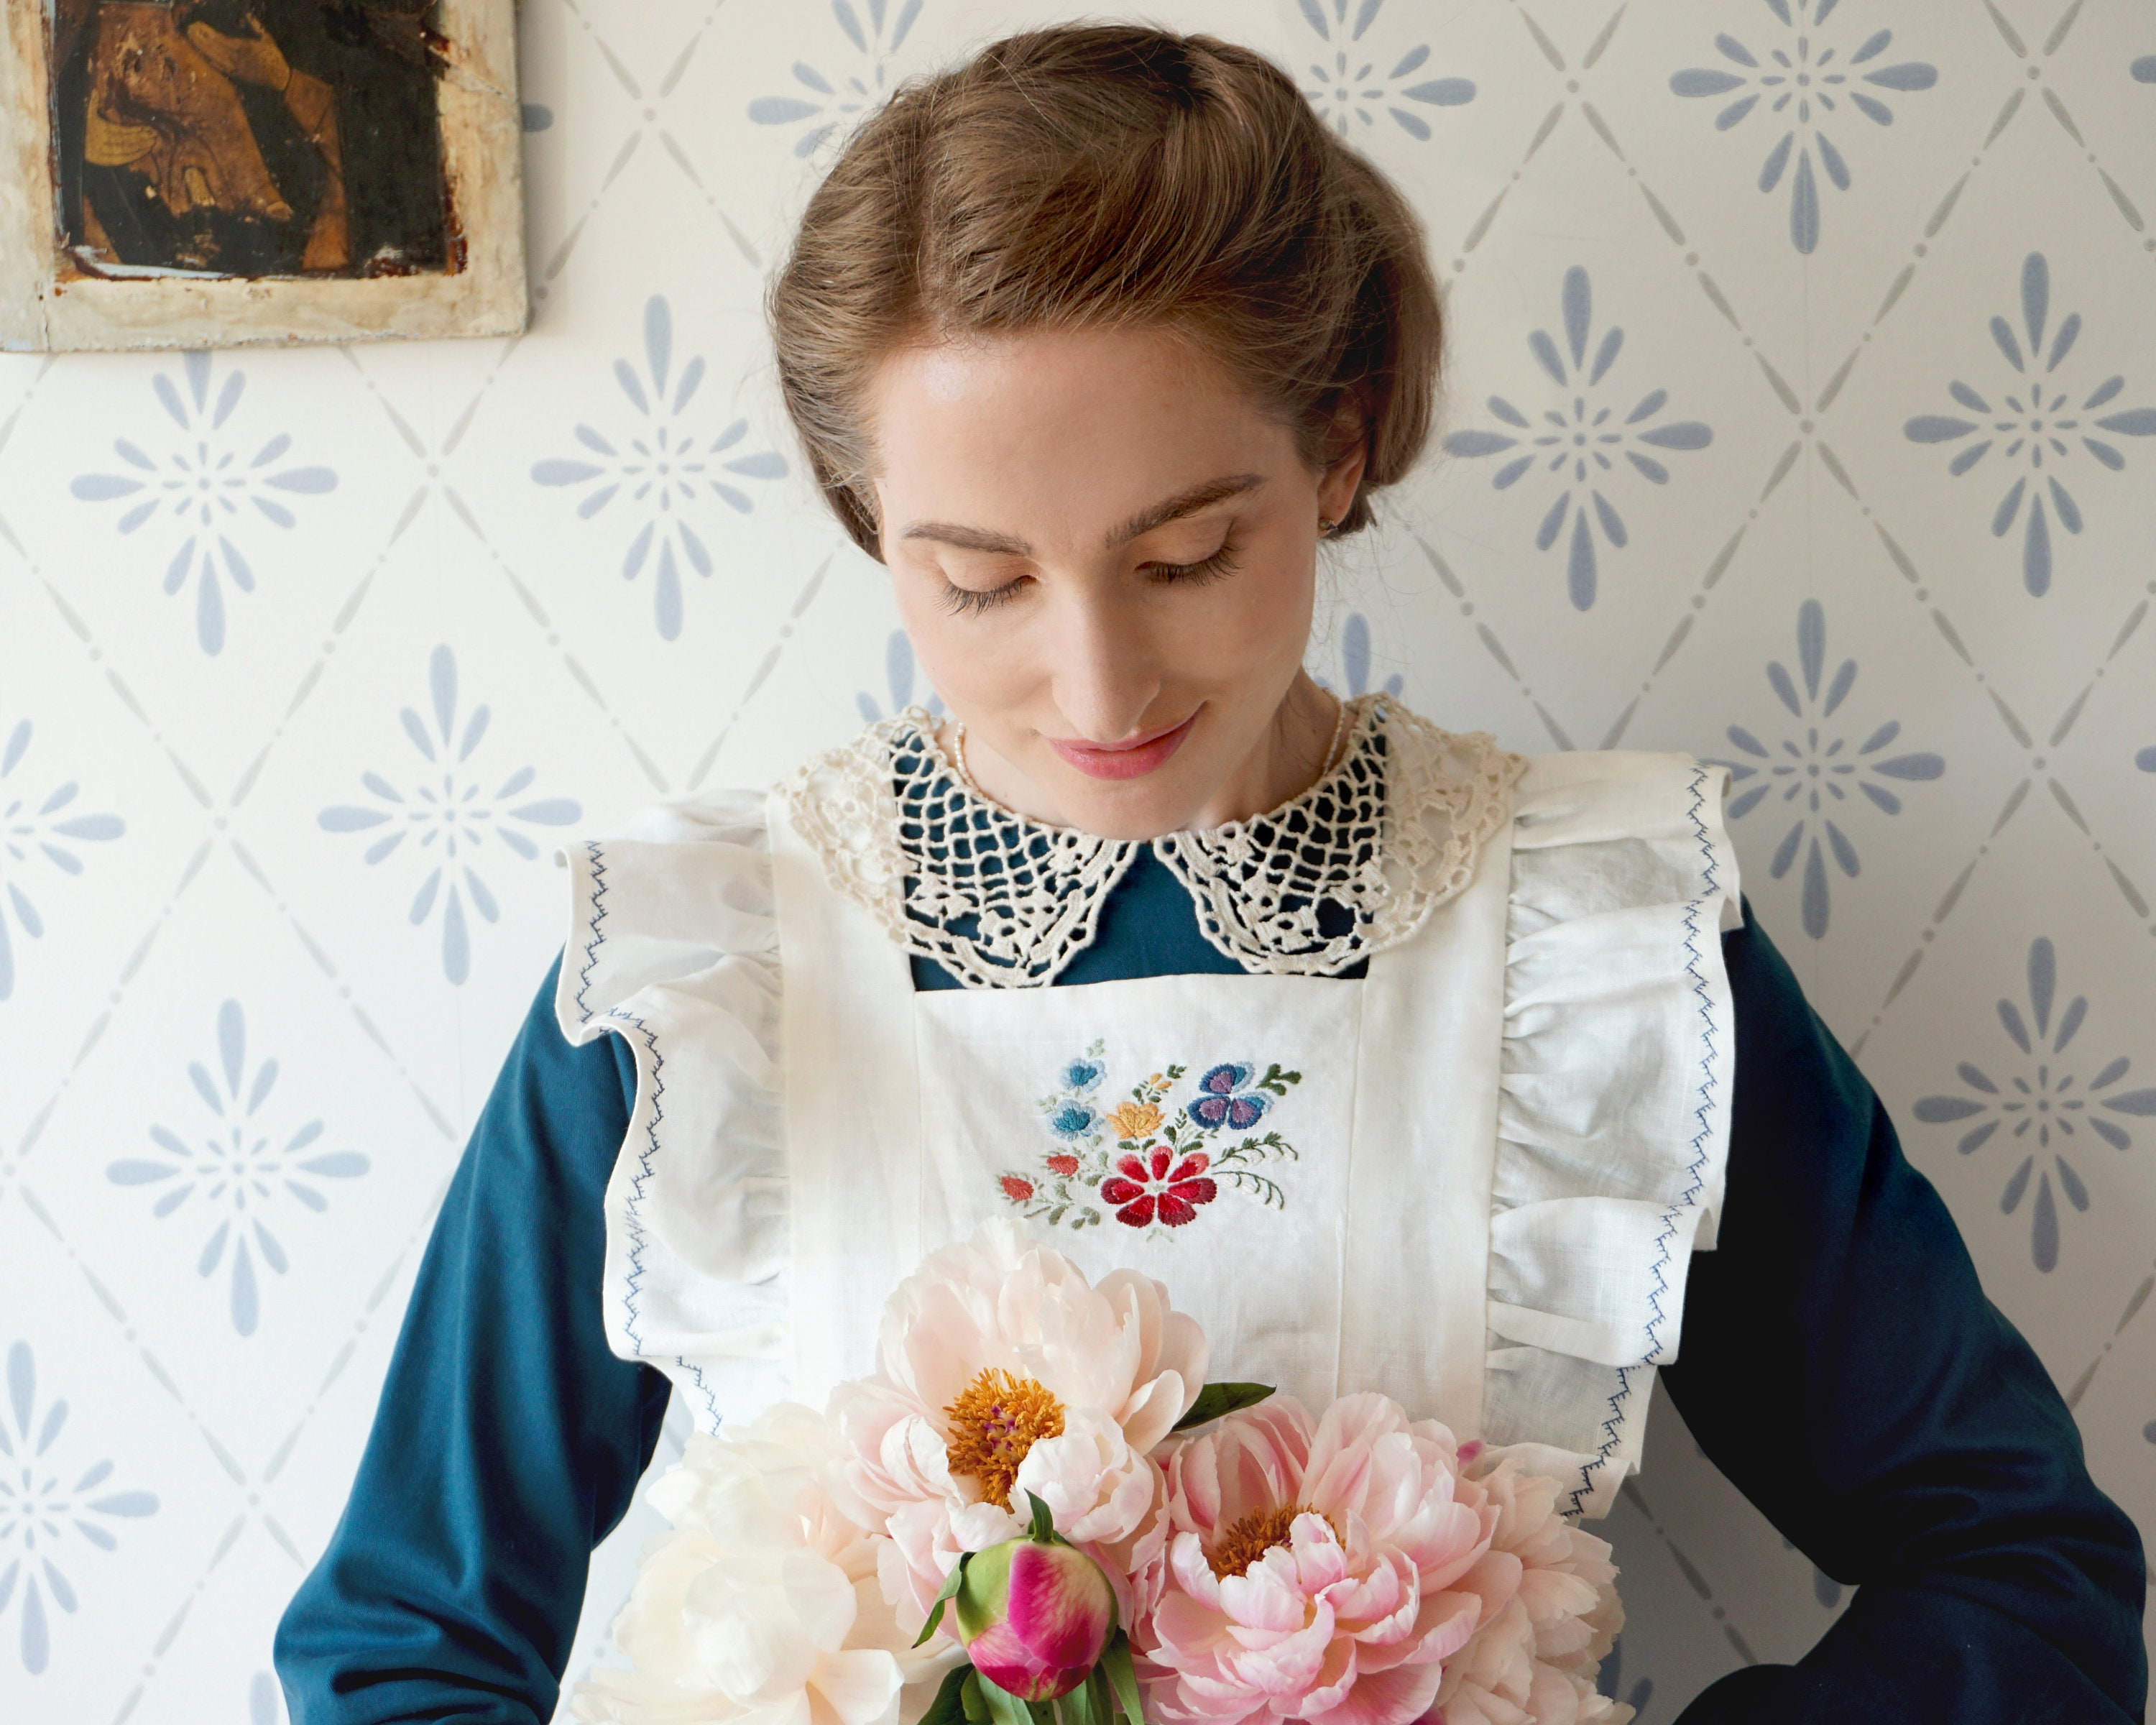 Vintage Aprons, Retro Aprons, Old Fashioned Aprons & Patterns Swedish Grace - Handmade Apron With Embroidery. Victorian Cottagecore Folklore Pinafore. Plus Size. Made in Sweden $250.60 AT vintagedancer.com